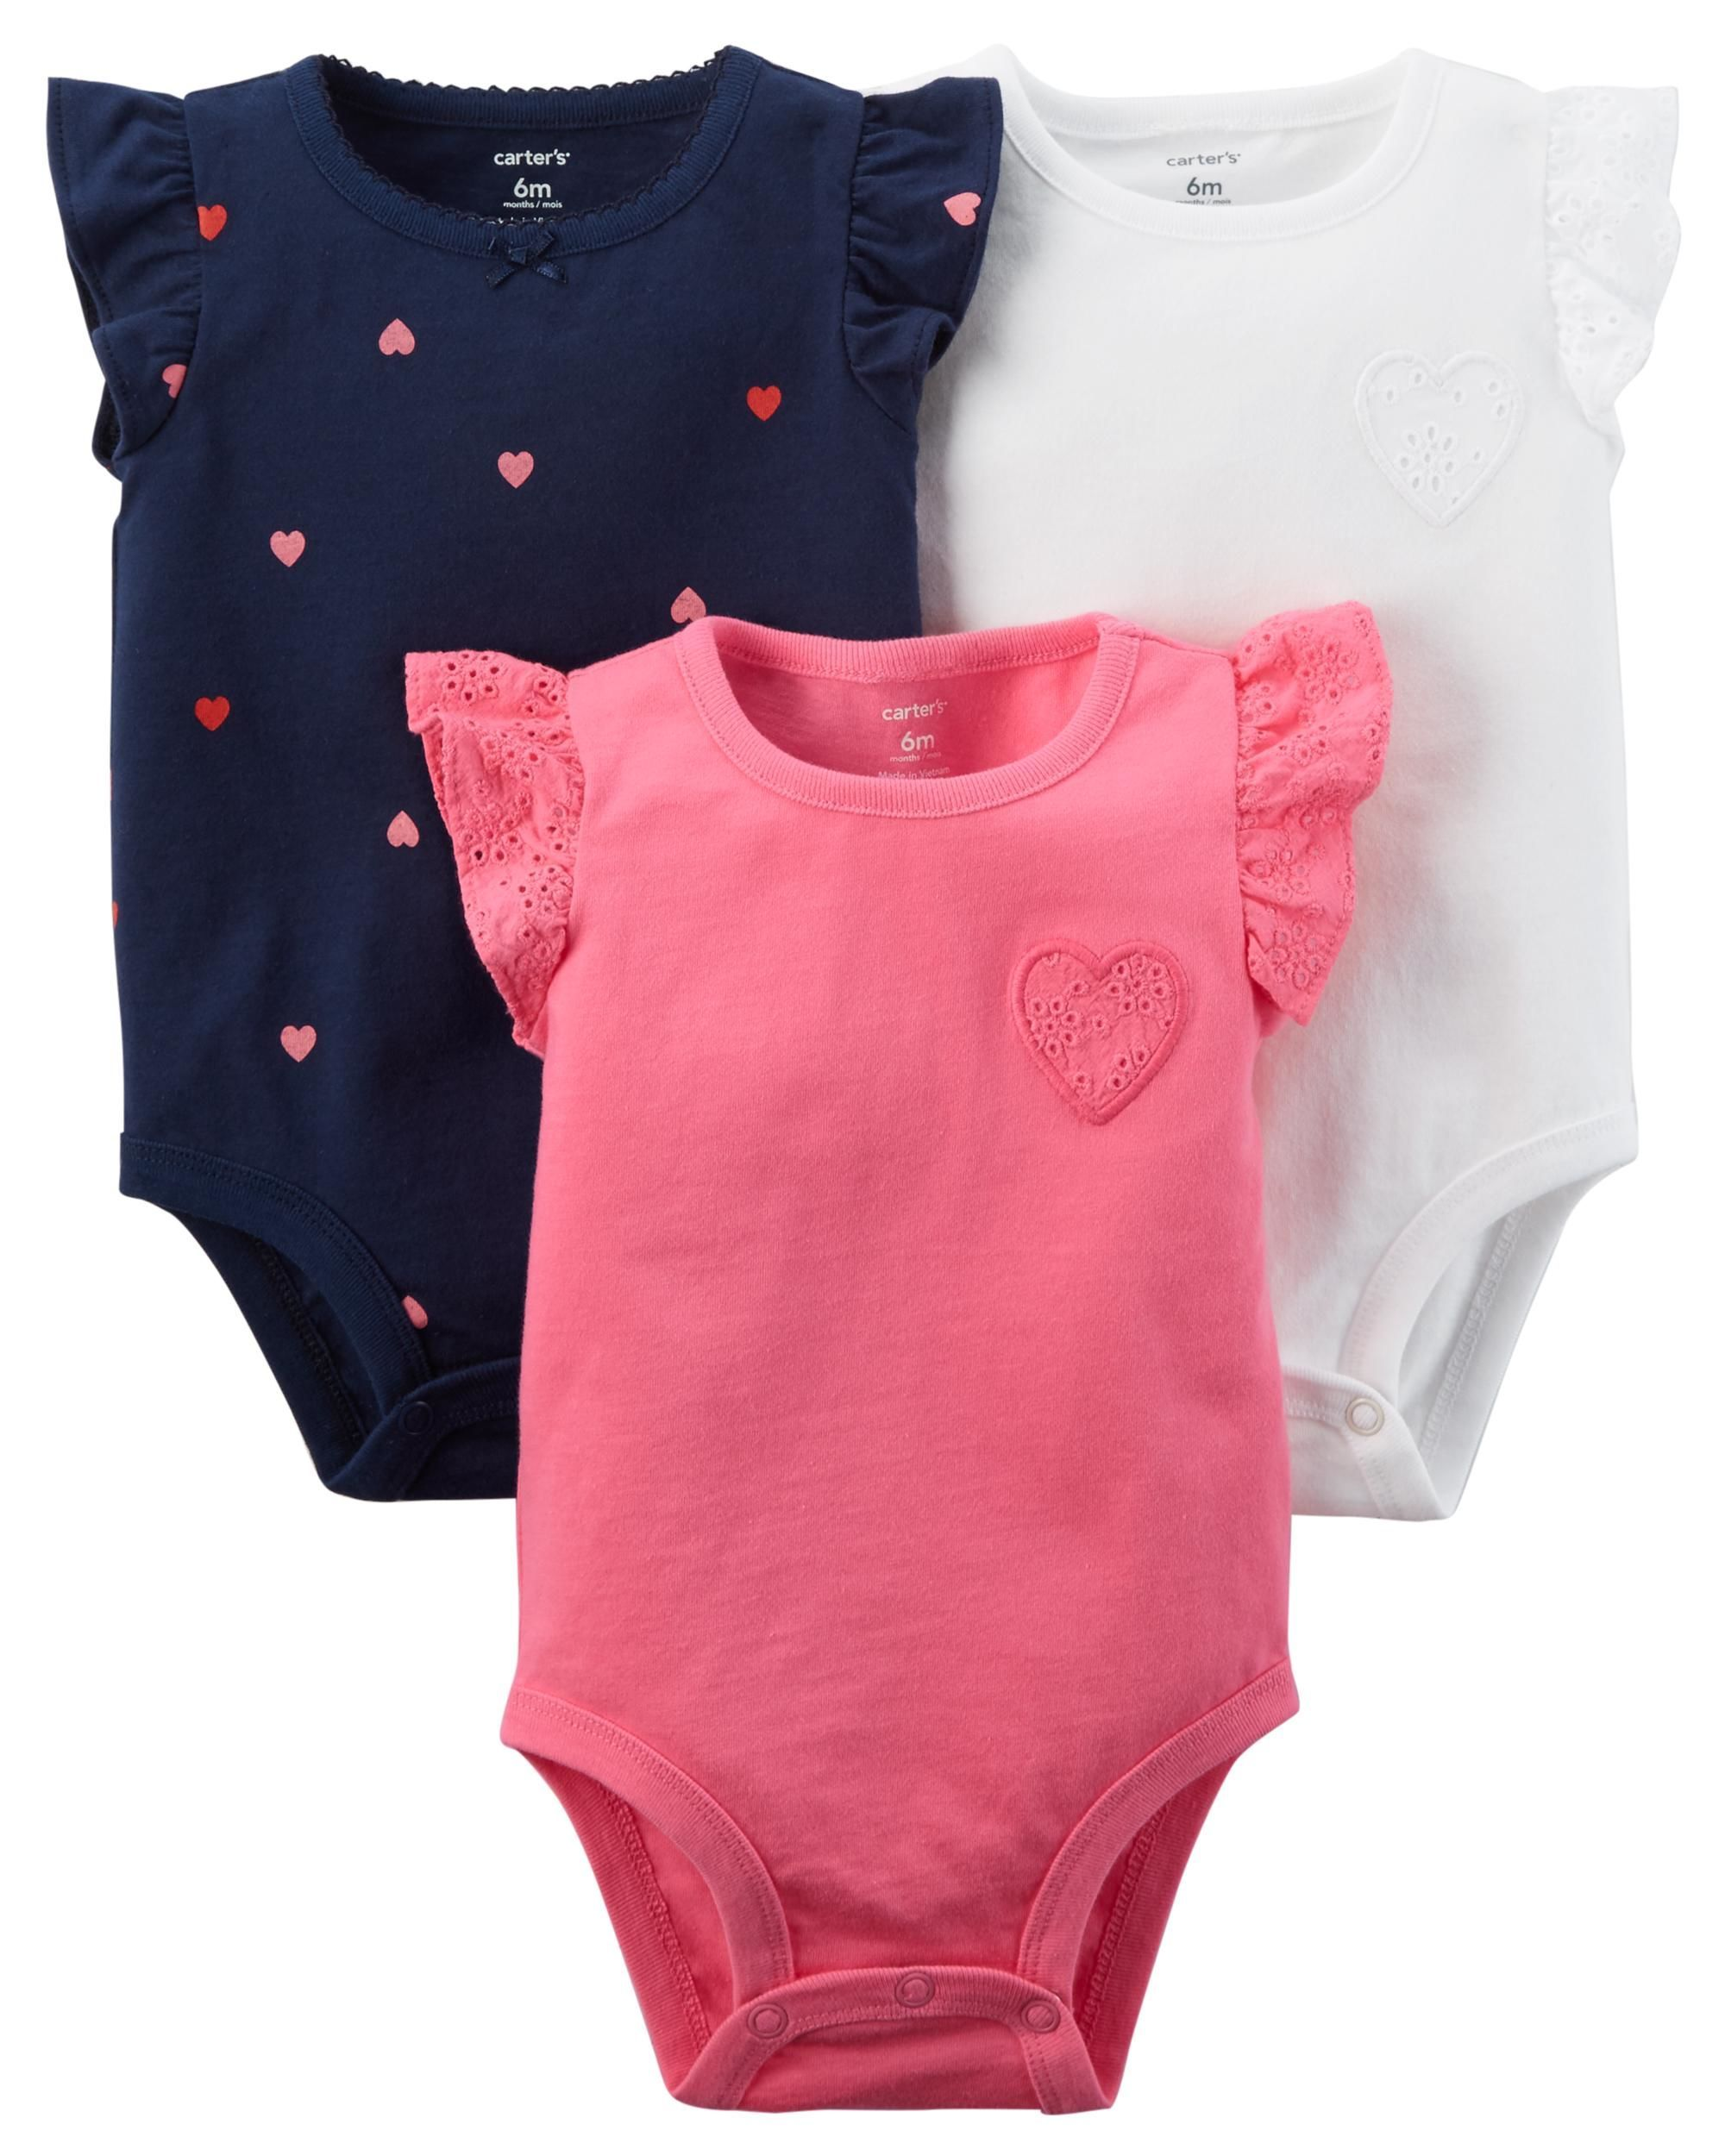 4657d10ea You can never have enough bodysuits! This pack features 3 flutter-sleeve  bodysuits with sweet heart prints.